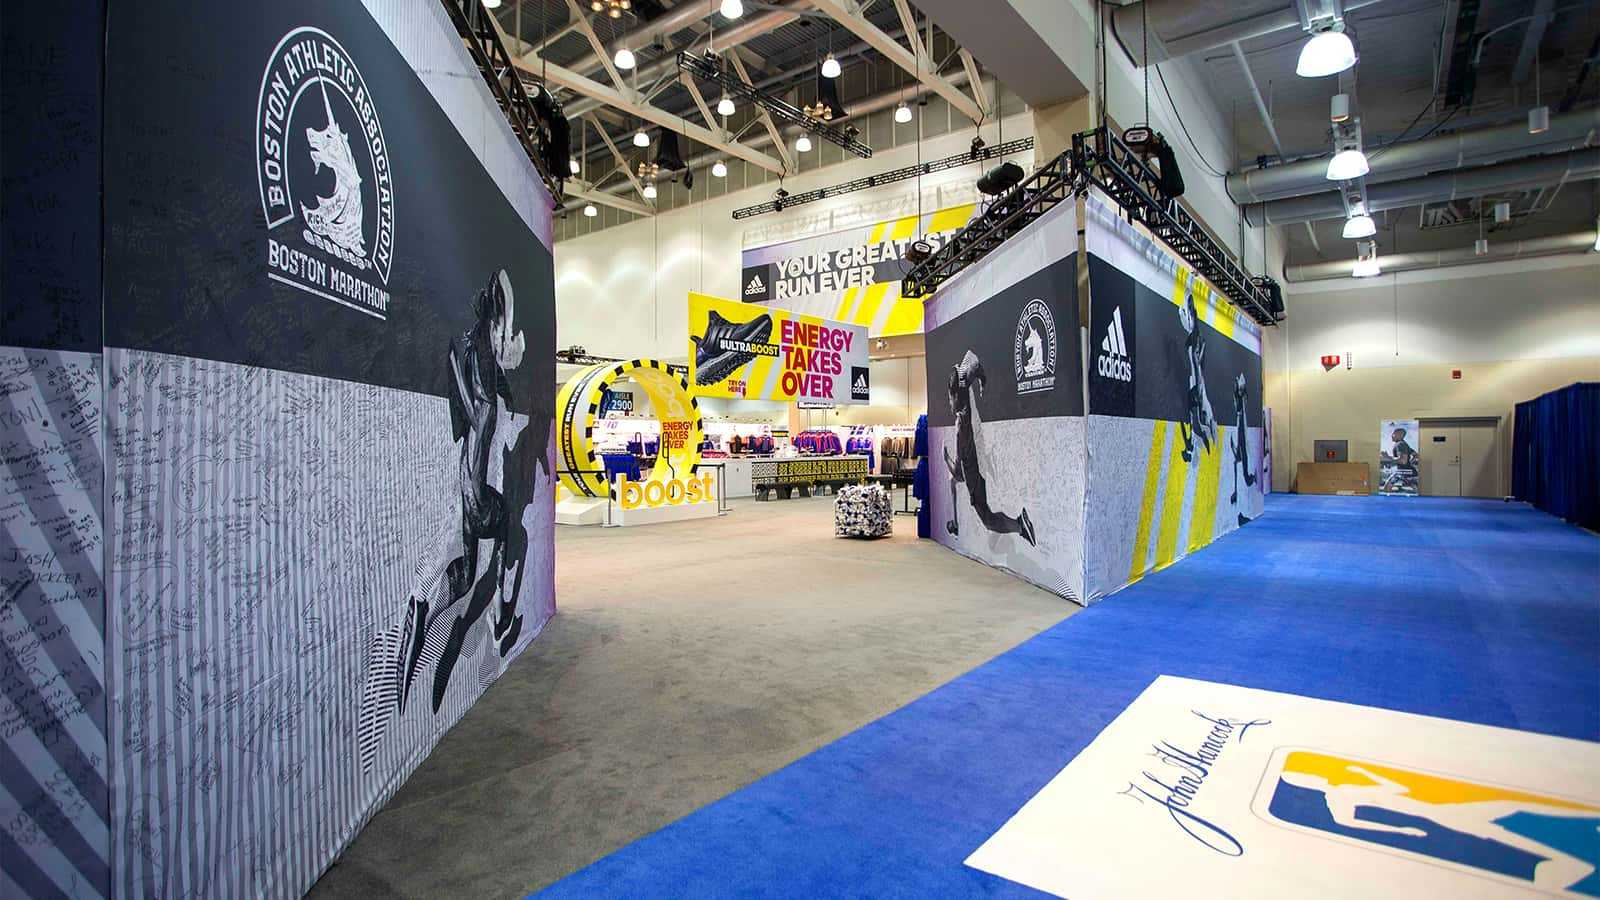 View of blue carpet entrance at adidas Boston Marathon store 2015.